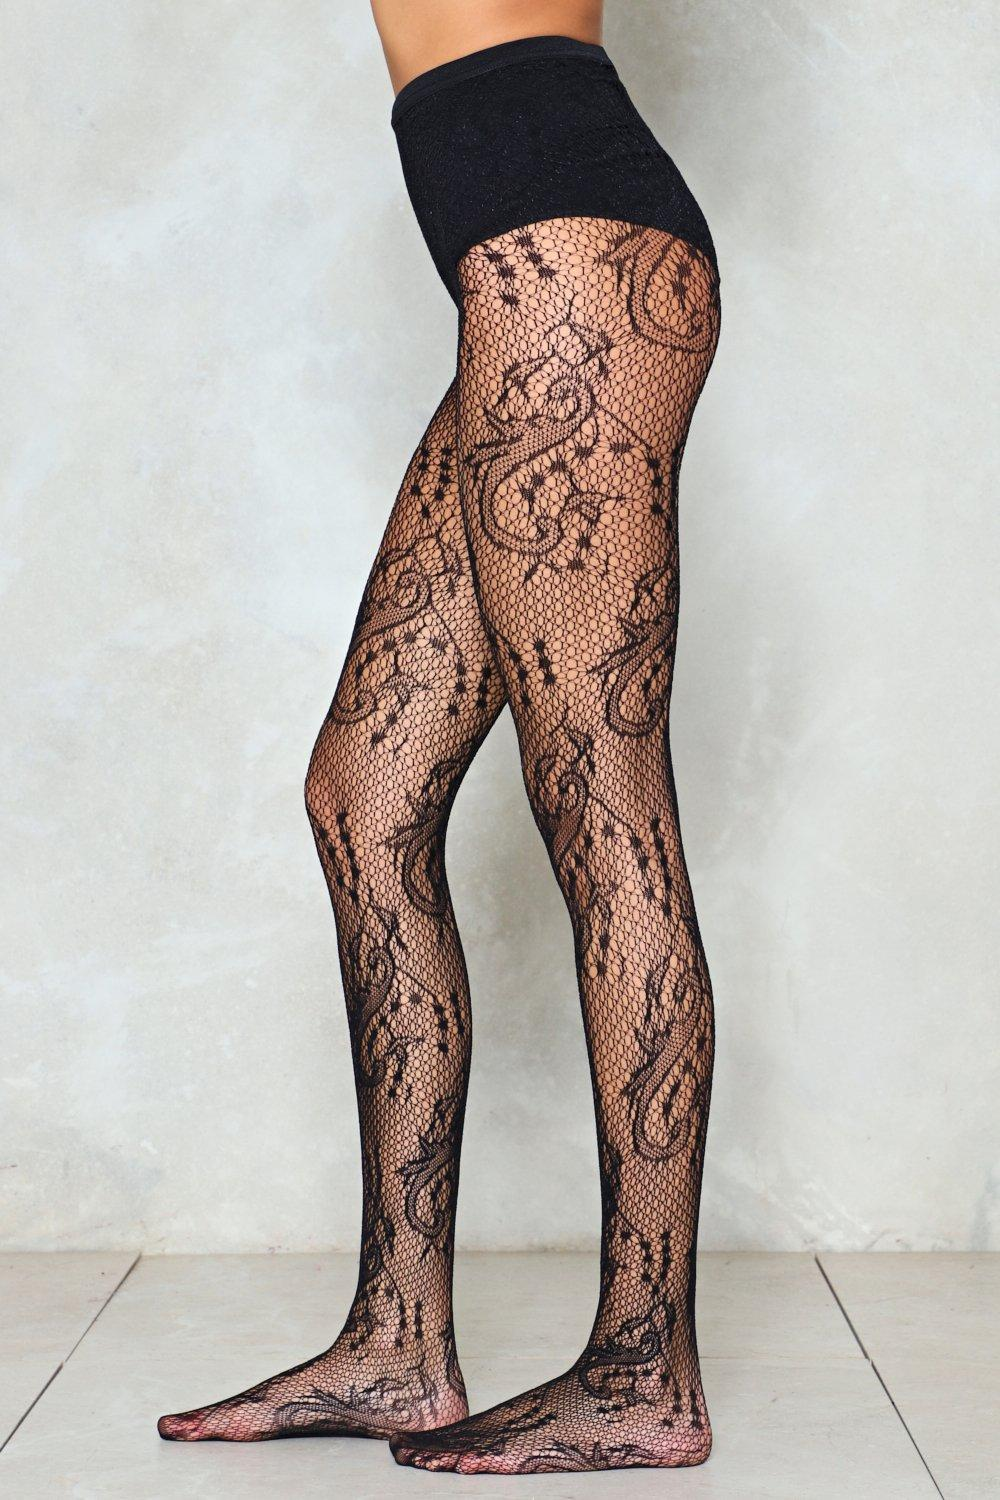 2a0dad101366b7 Net Your Business Pattern Fishnet Tights | Shop Clothes at Nasty Gal!